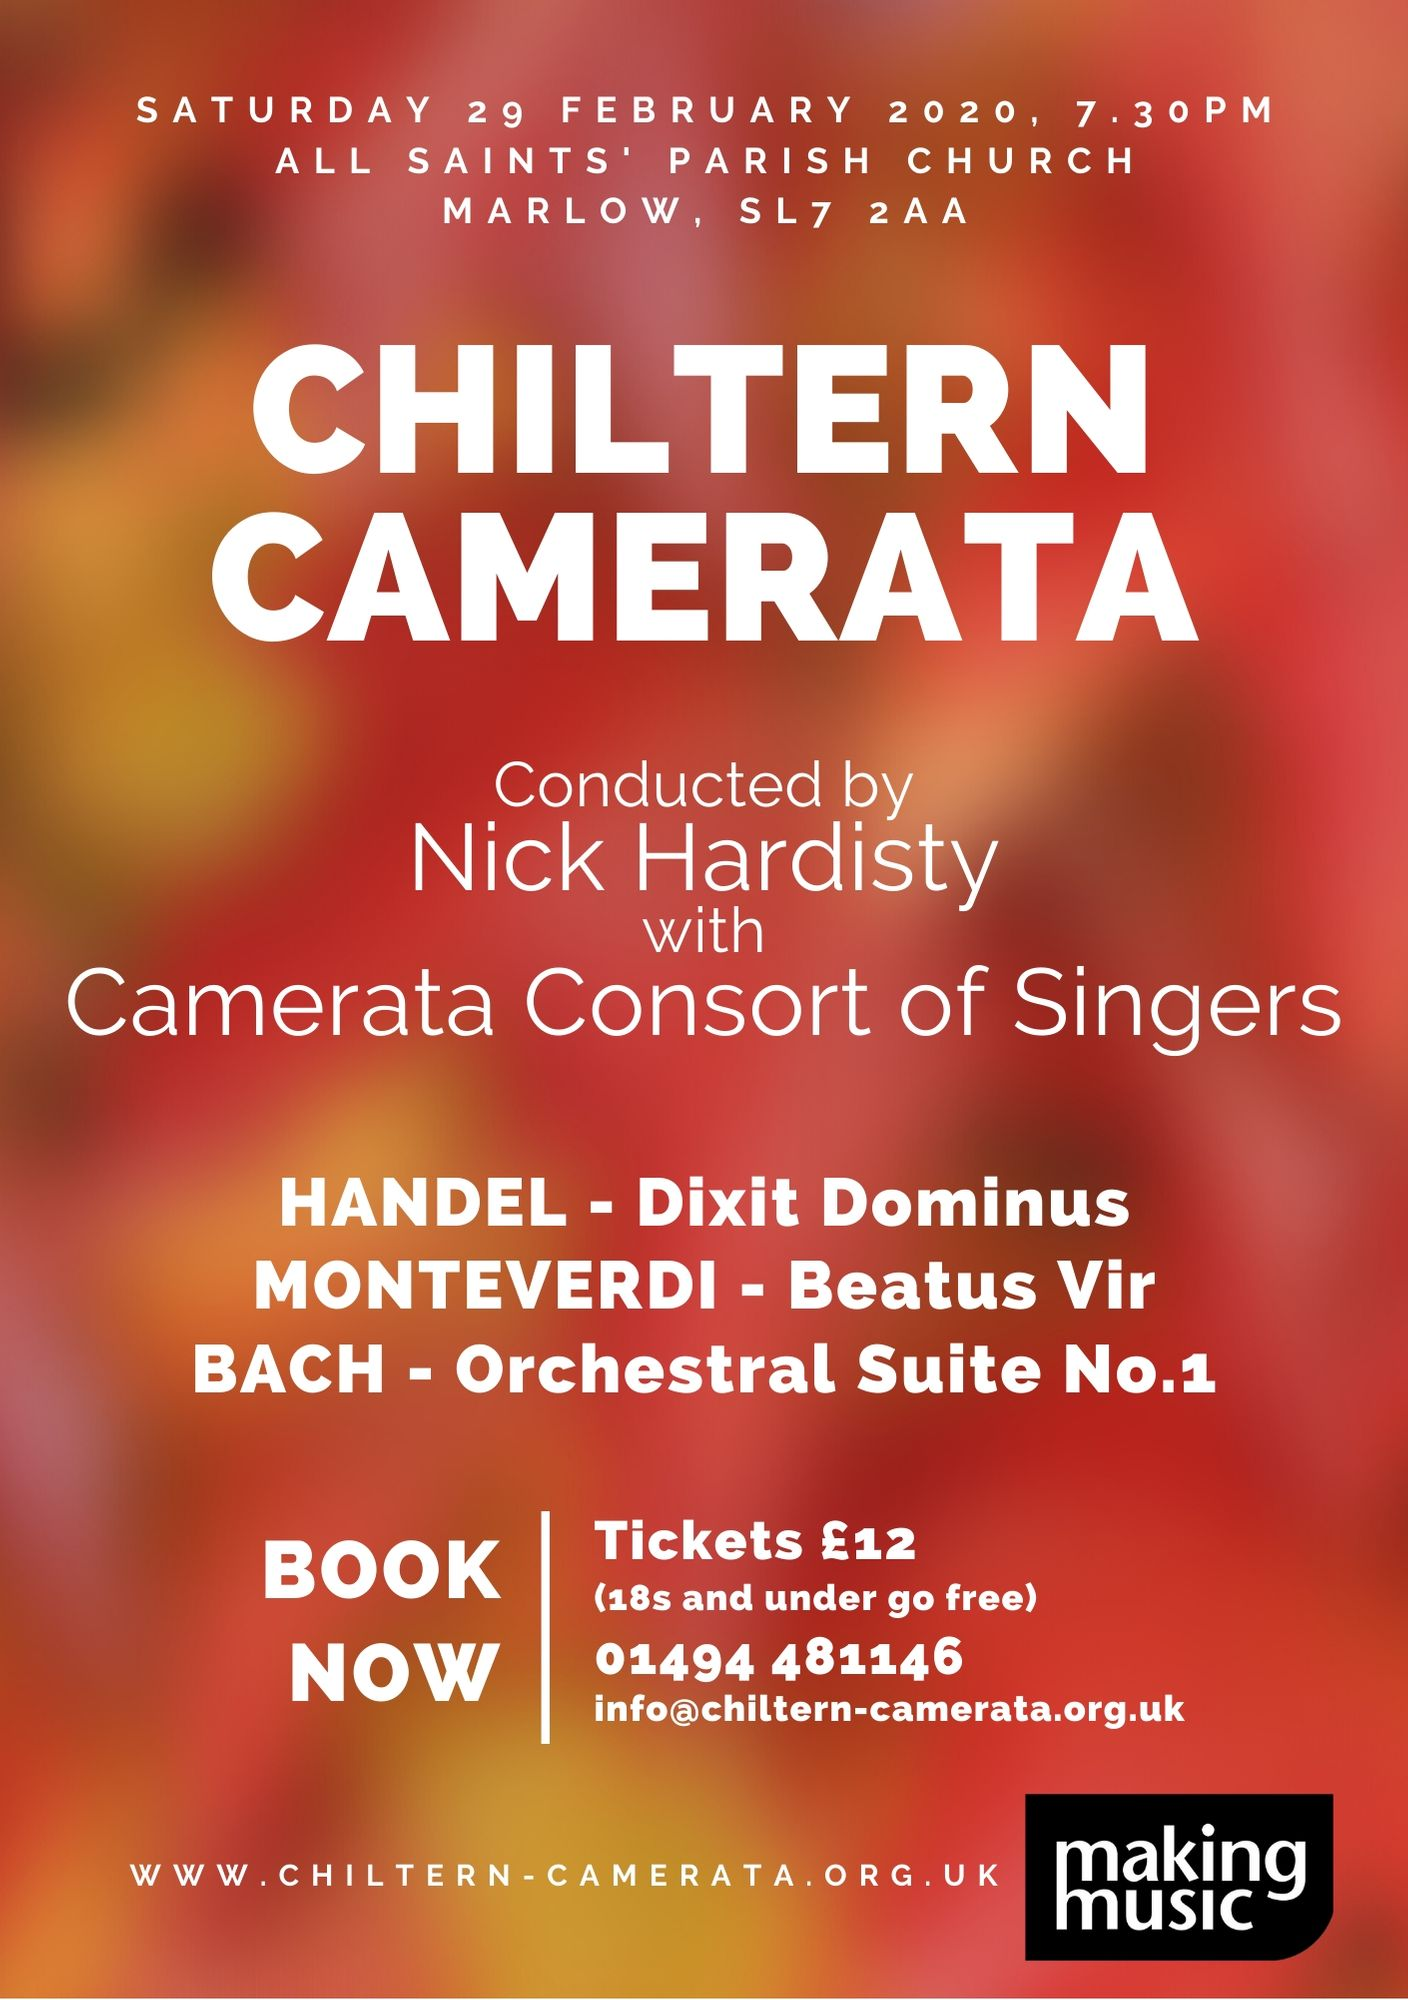 Chiltern Camerata orchestra and choir concert